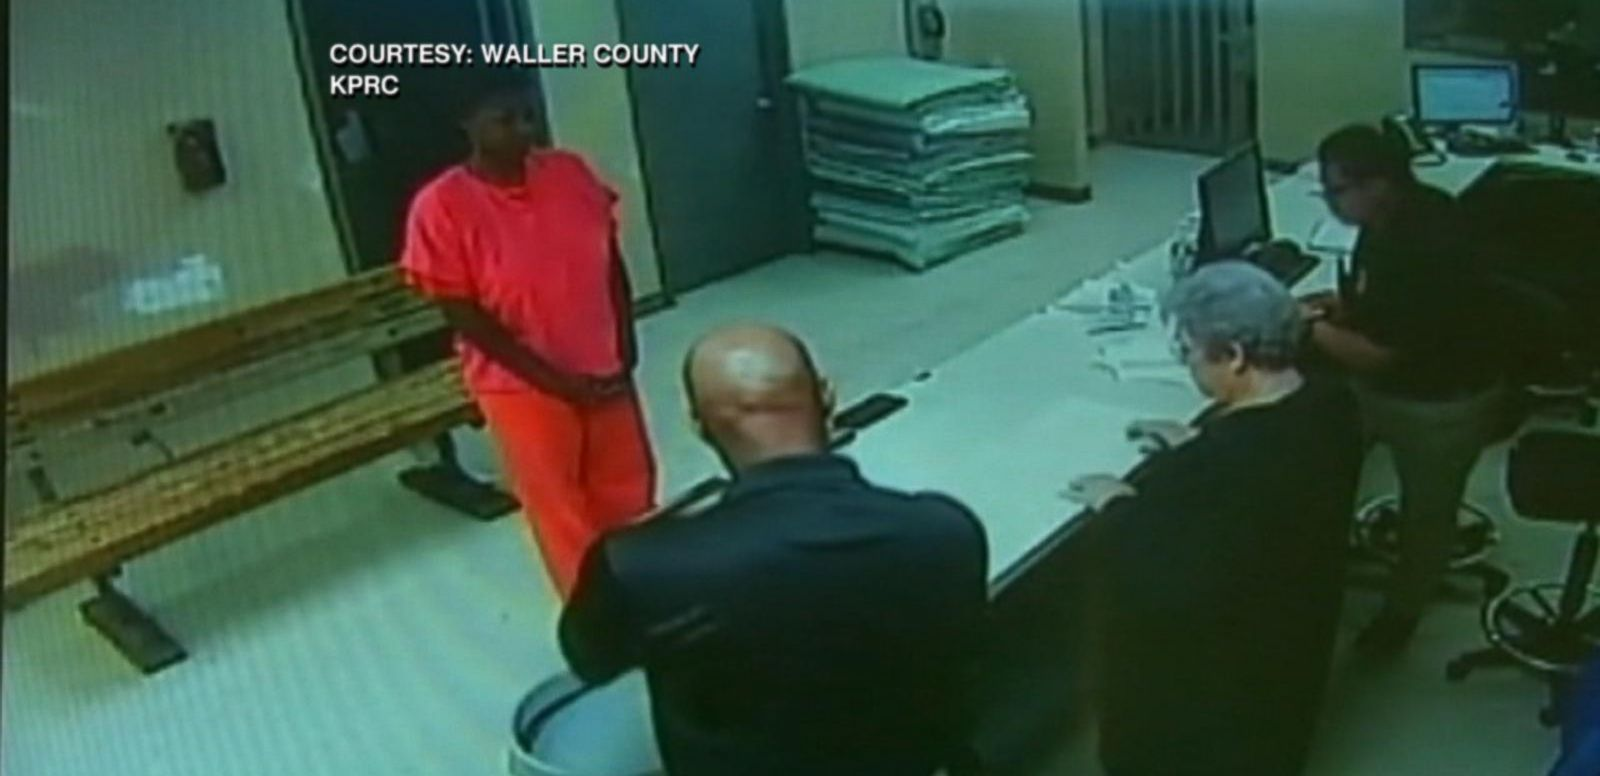 Texas Attorneys Want Sandra Bland Wrongful Death Suit Tossed